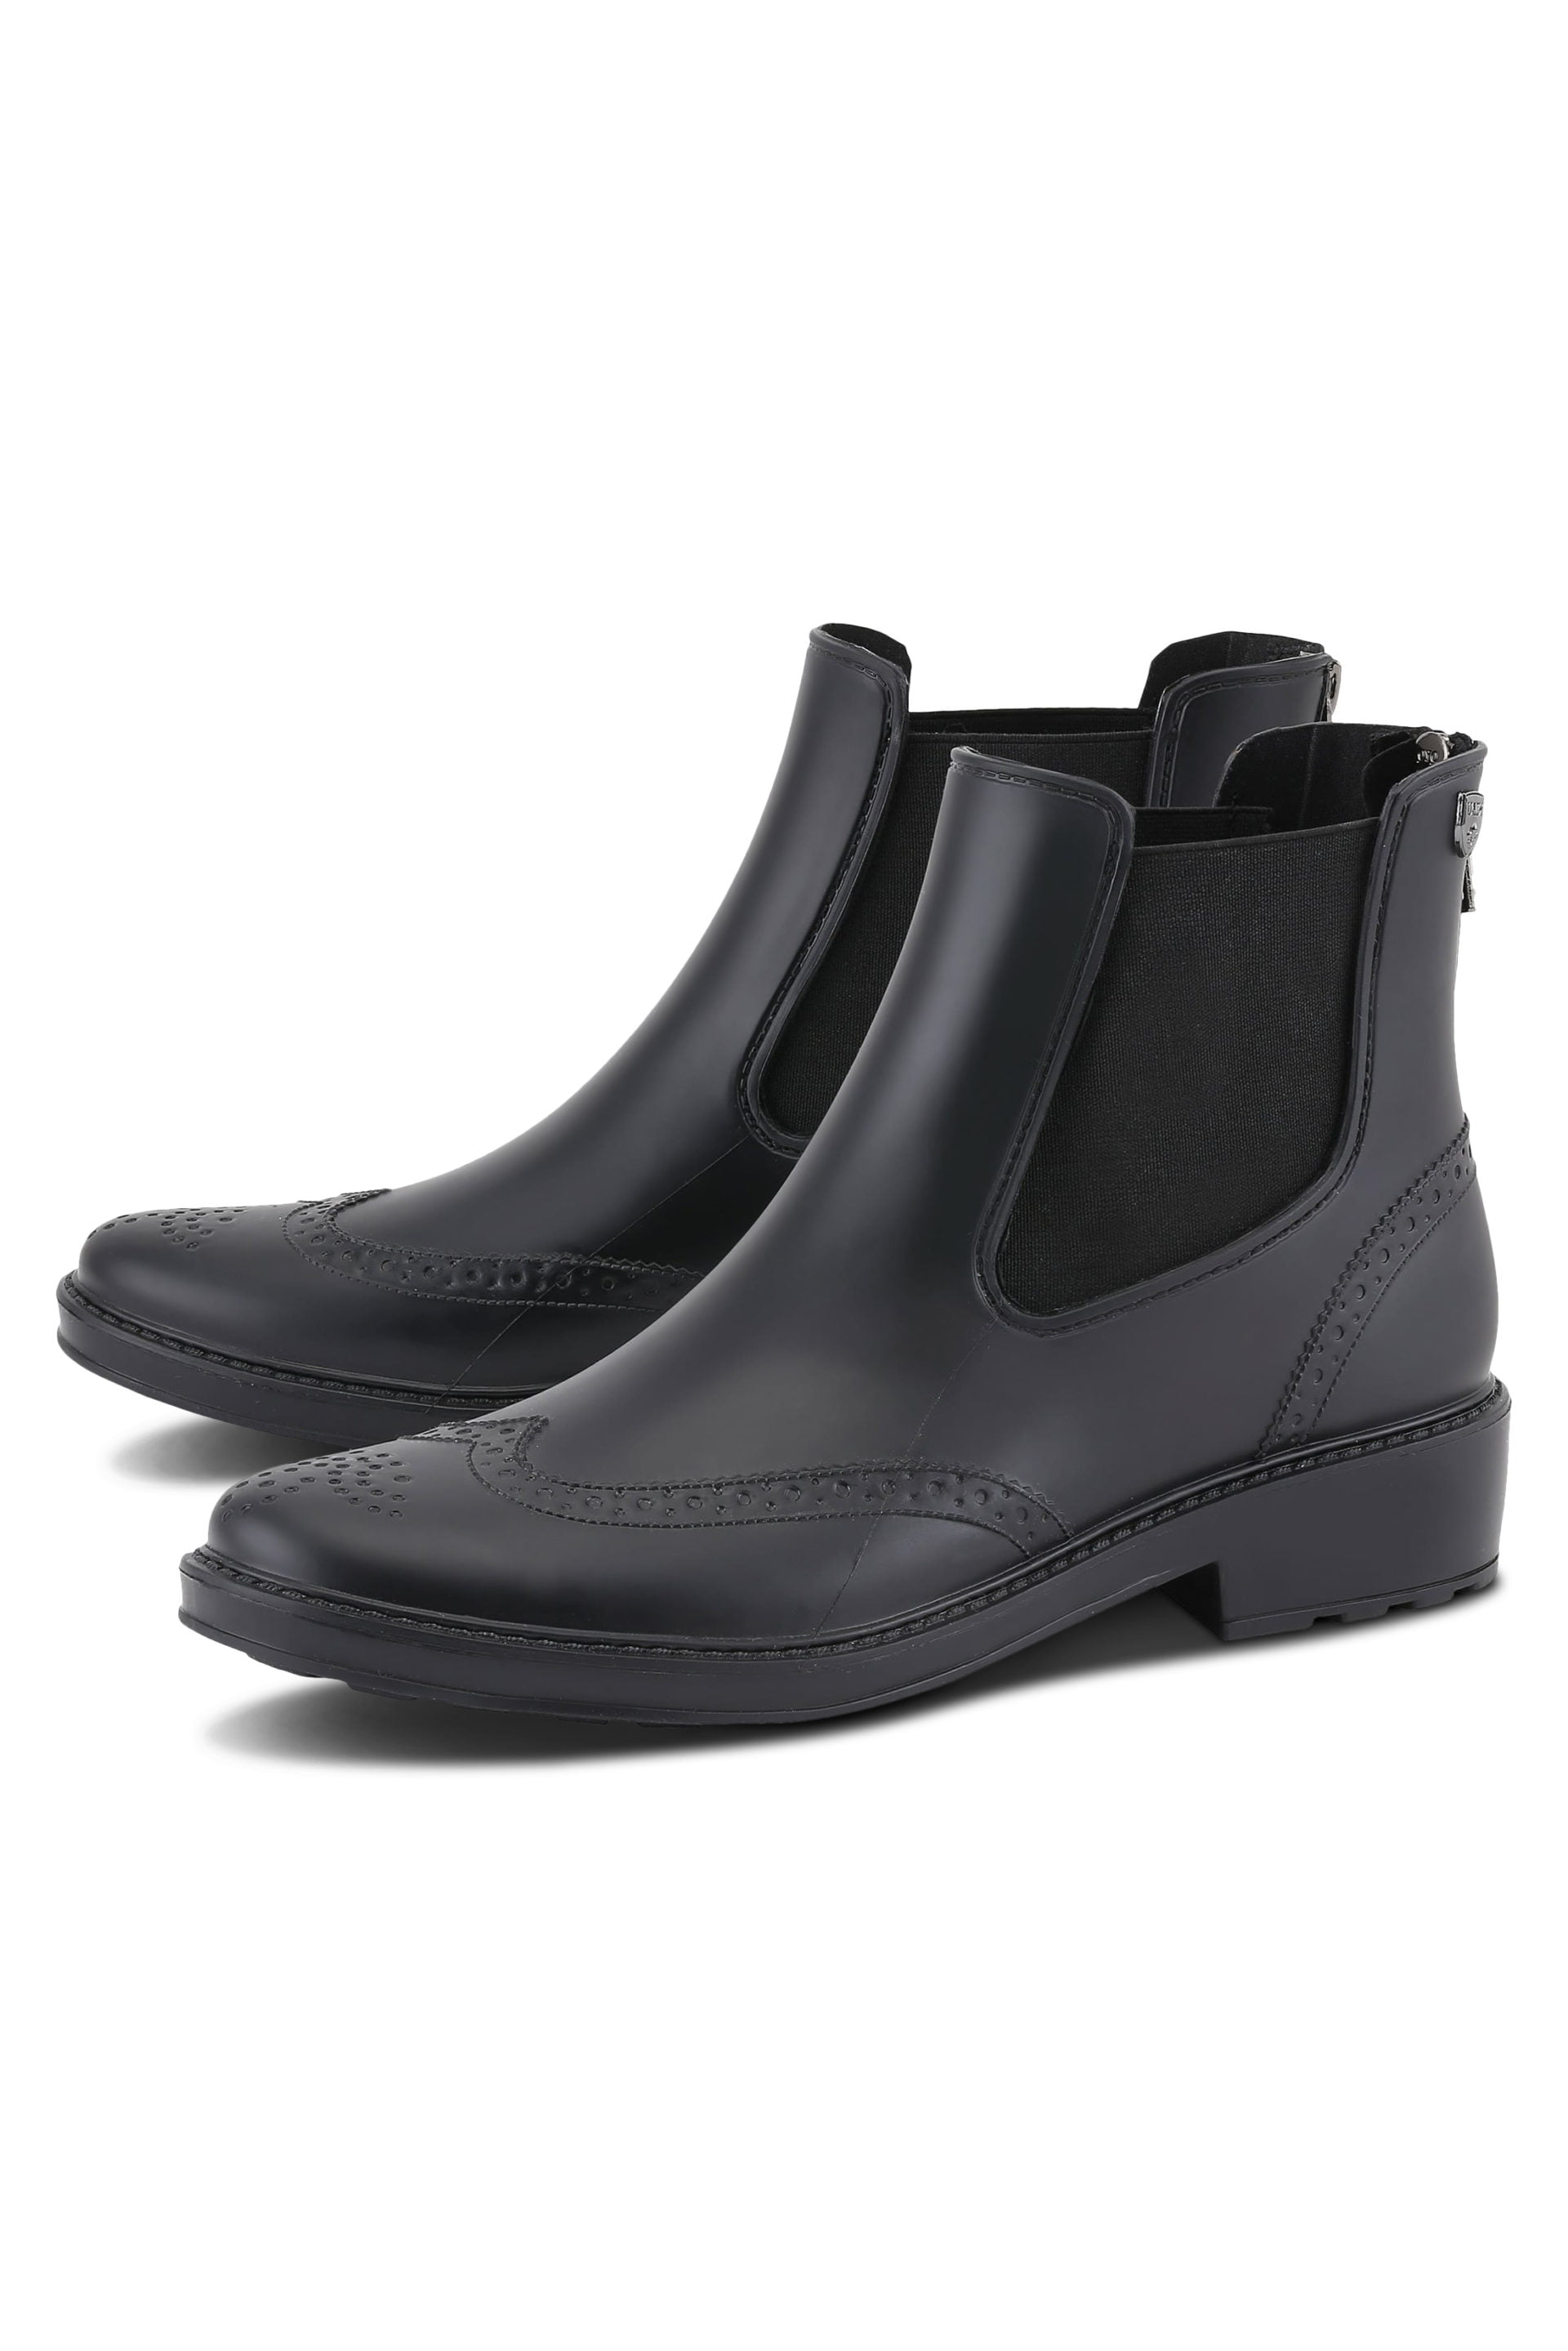 Chelsea rainboots in matte black